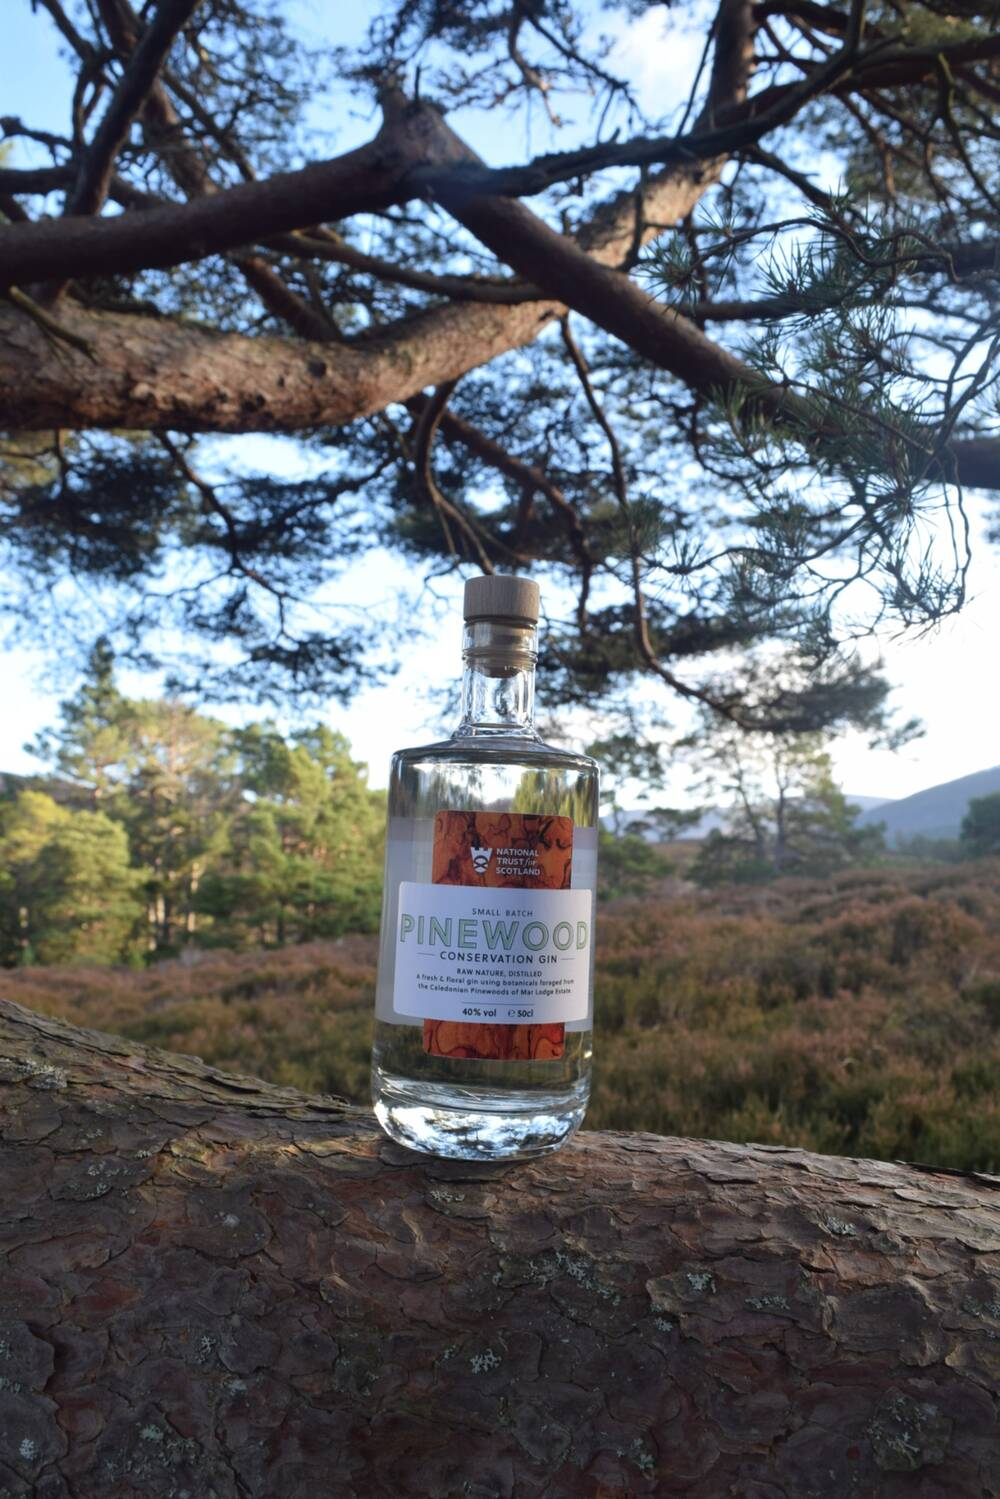 A bottle of gin is balanced on a pine log, with a heather-filled clearing in the background.